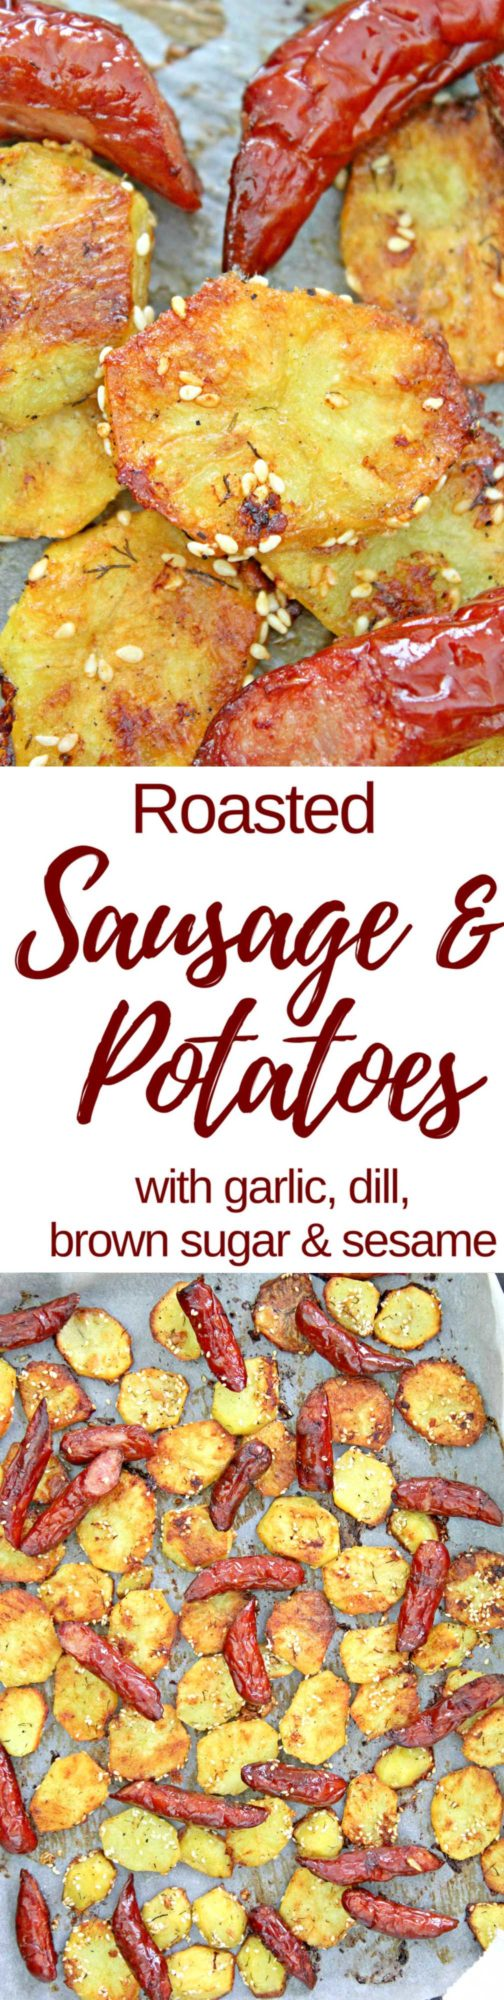 Roasted sausage and potatoes